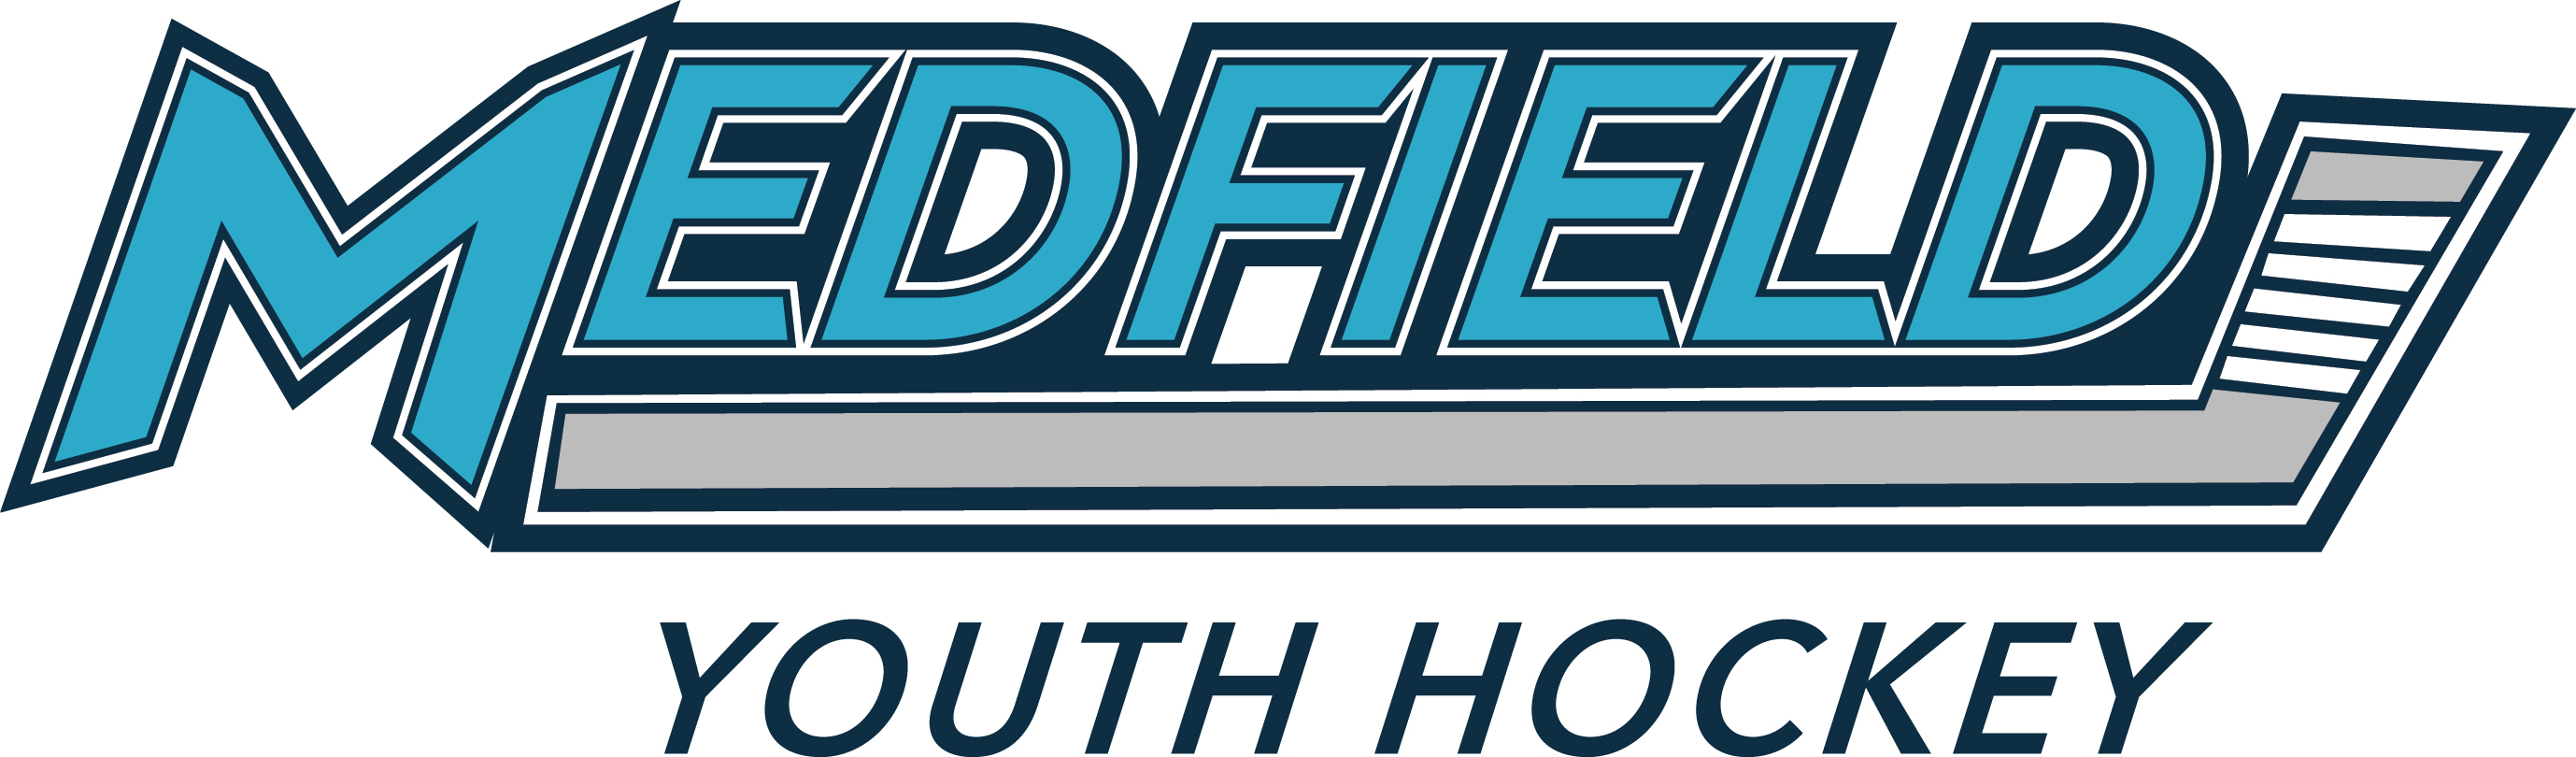 Medfield Youth Hockey, Hockey, Goal, Rink